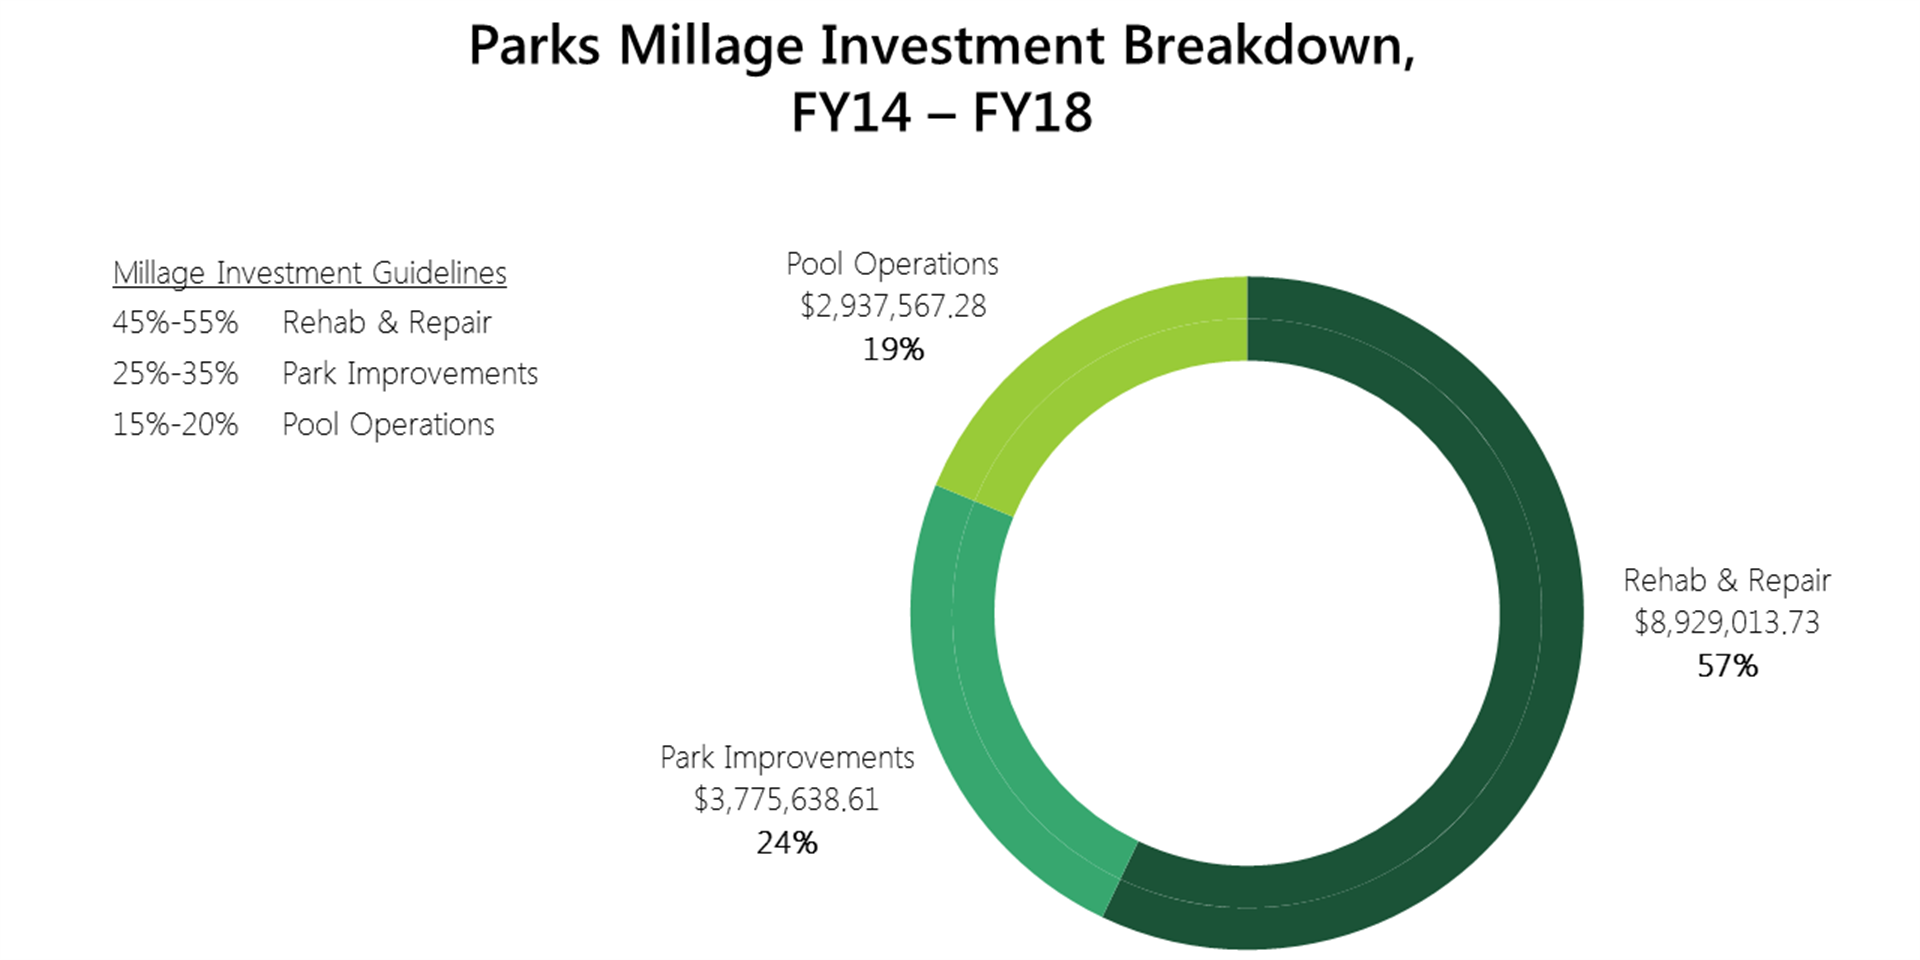 PNG image of Park Millage investments from fiscal year 14 to 18